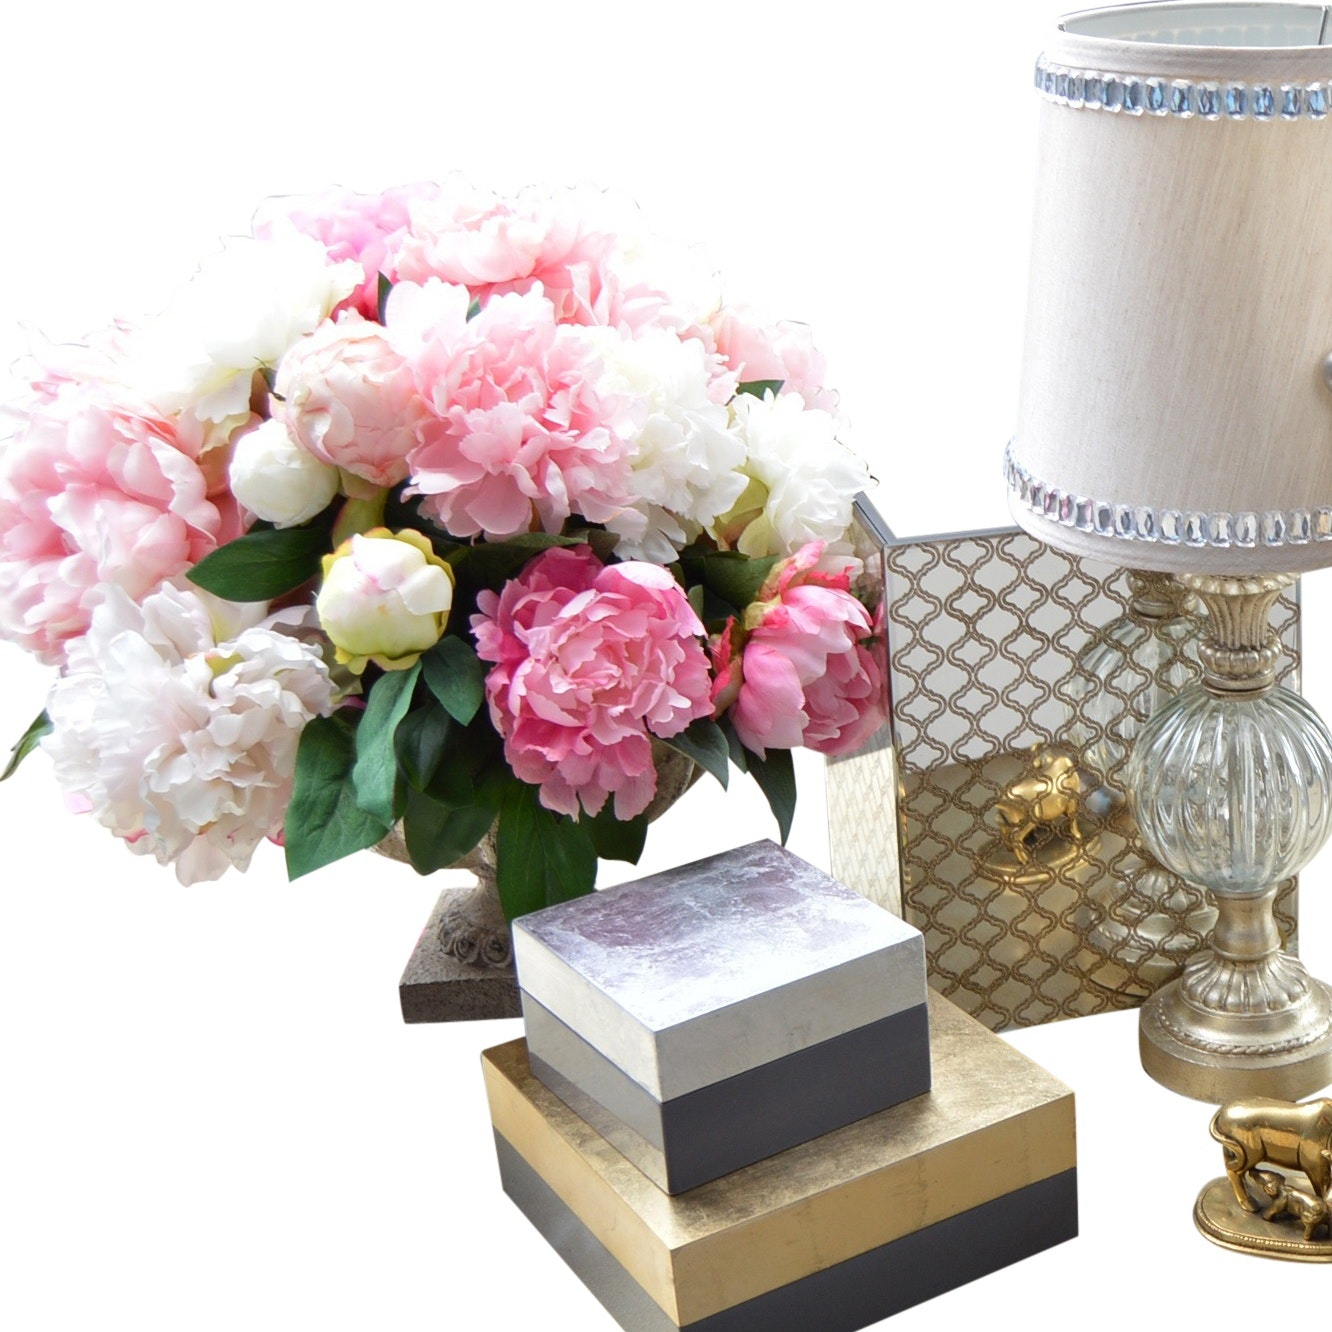 Decor with Lamp, Boxes, Peony Arrangment